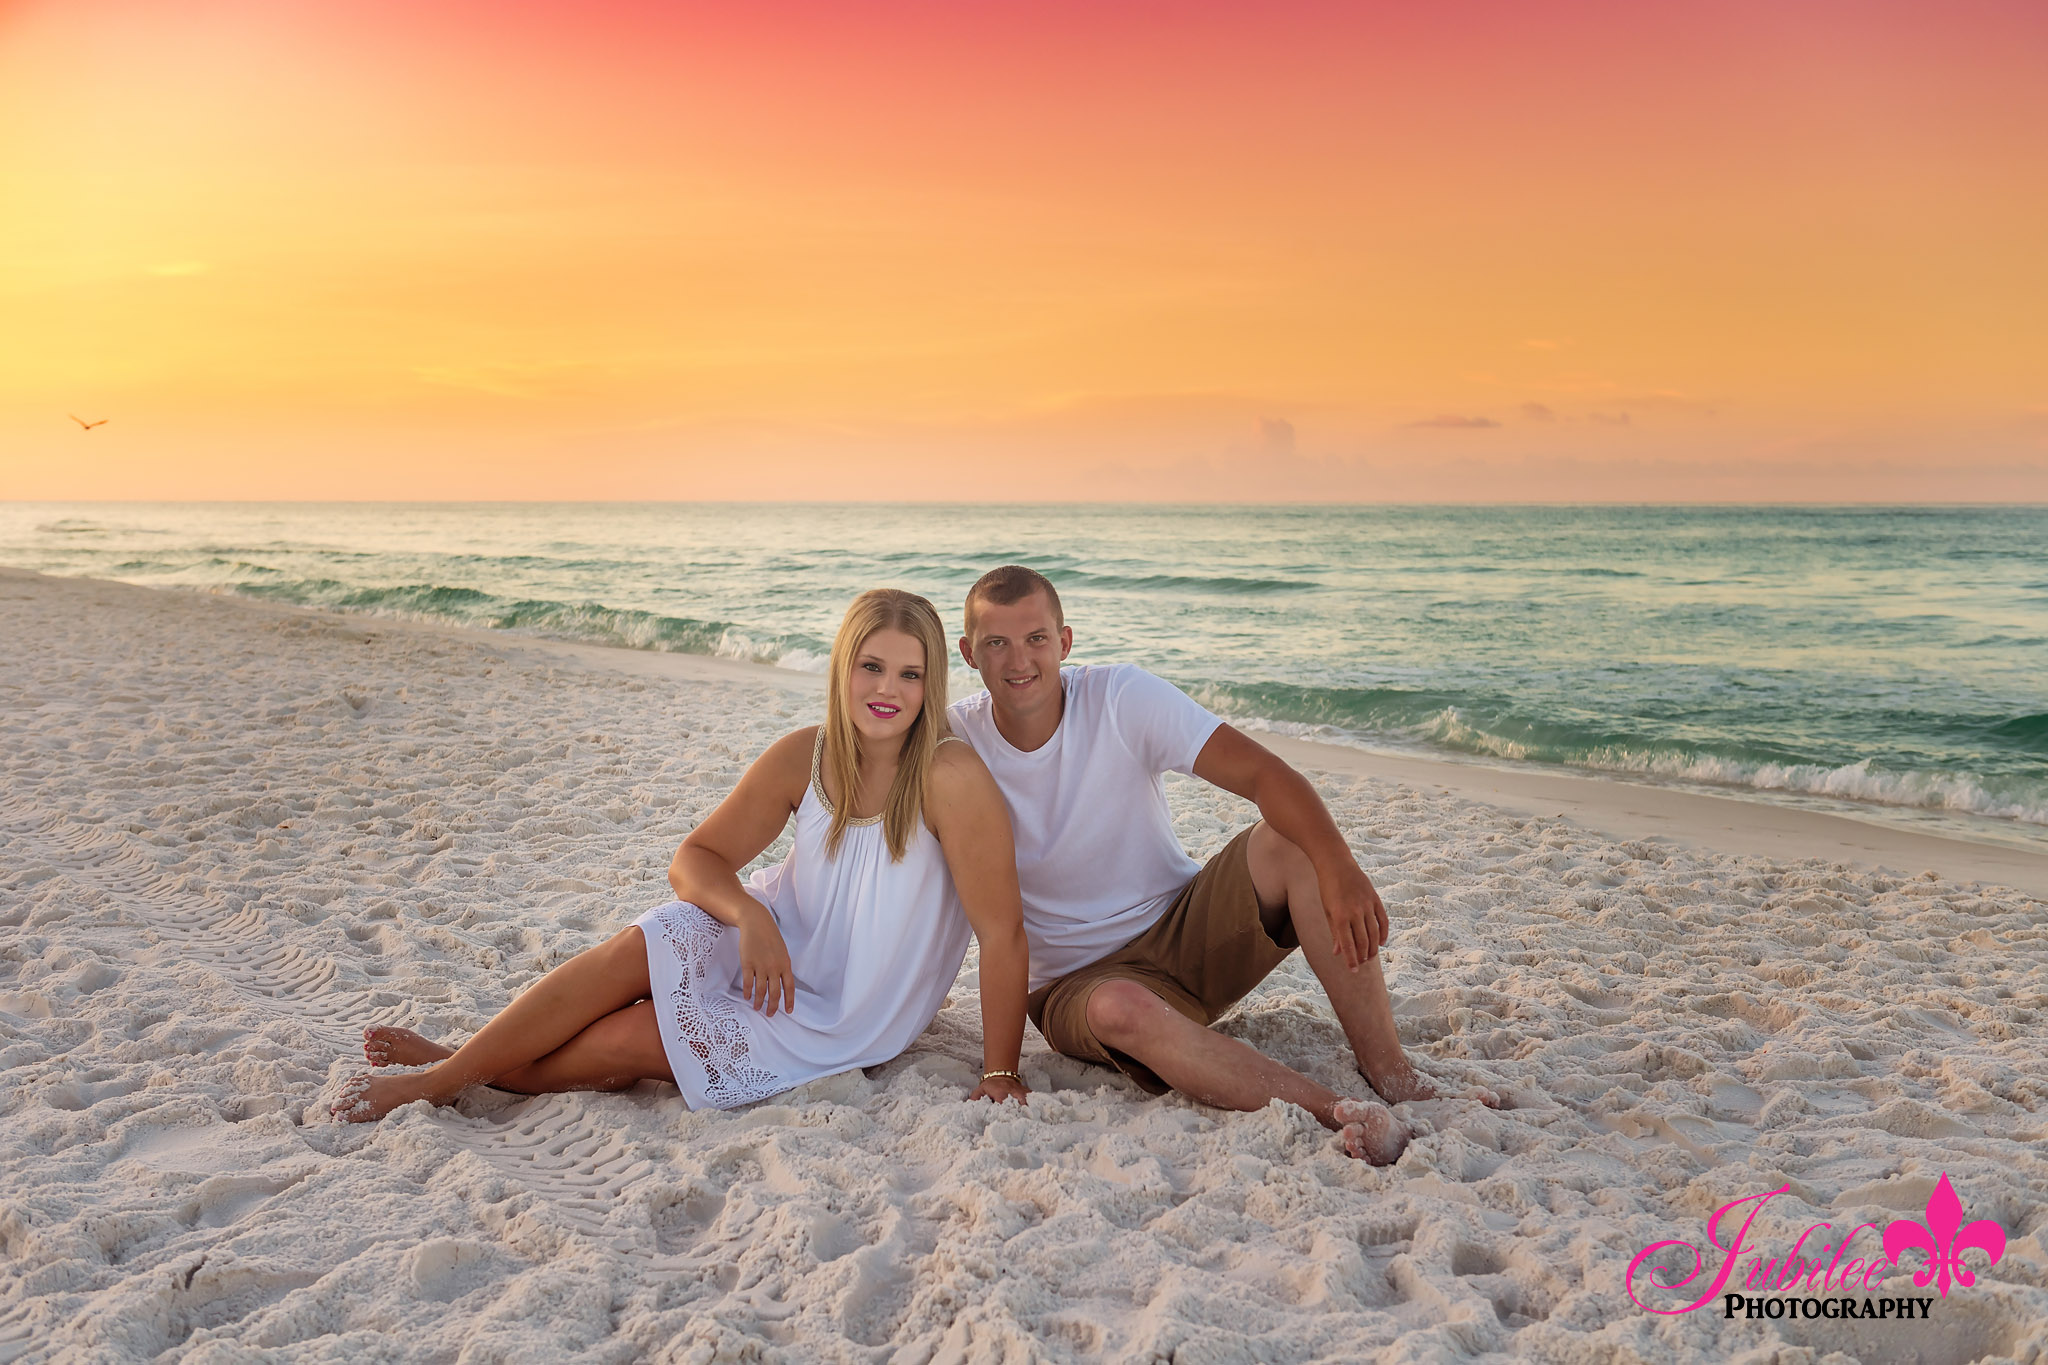 Destin_Sunrise_Photographer_0861